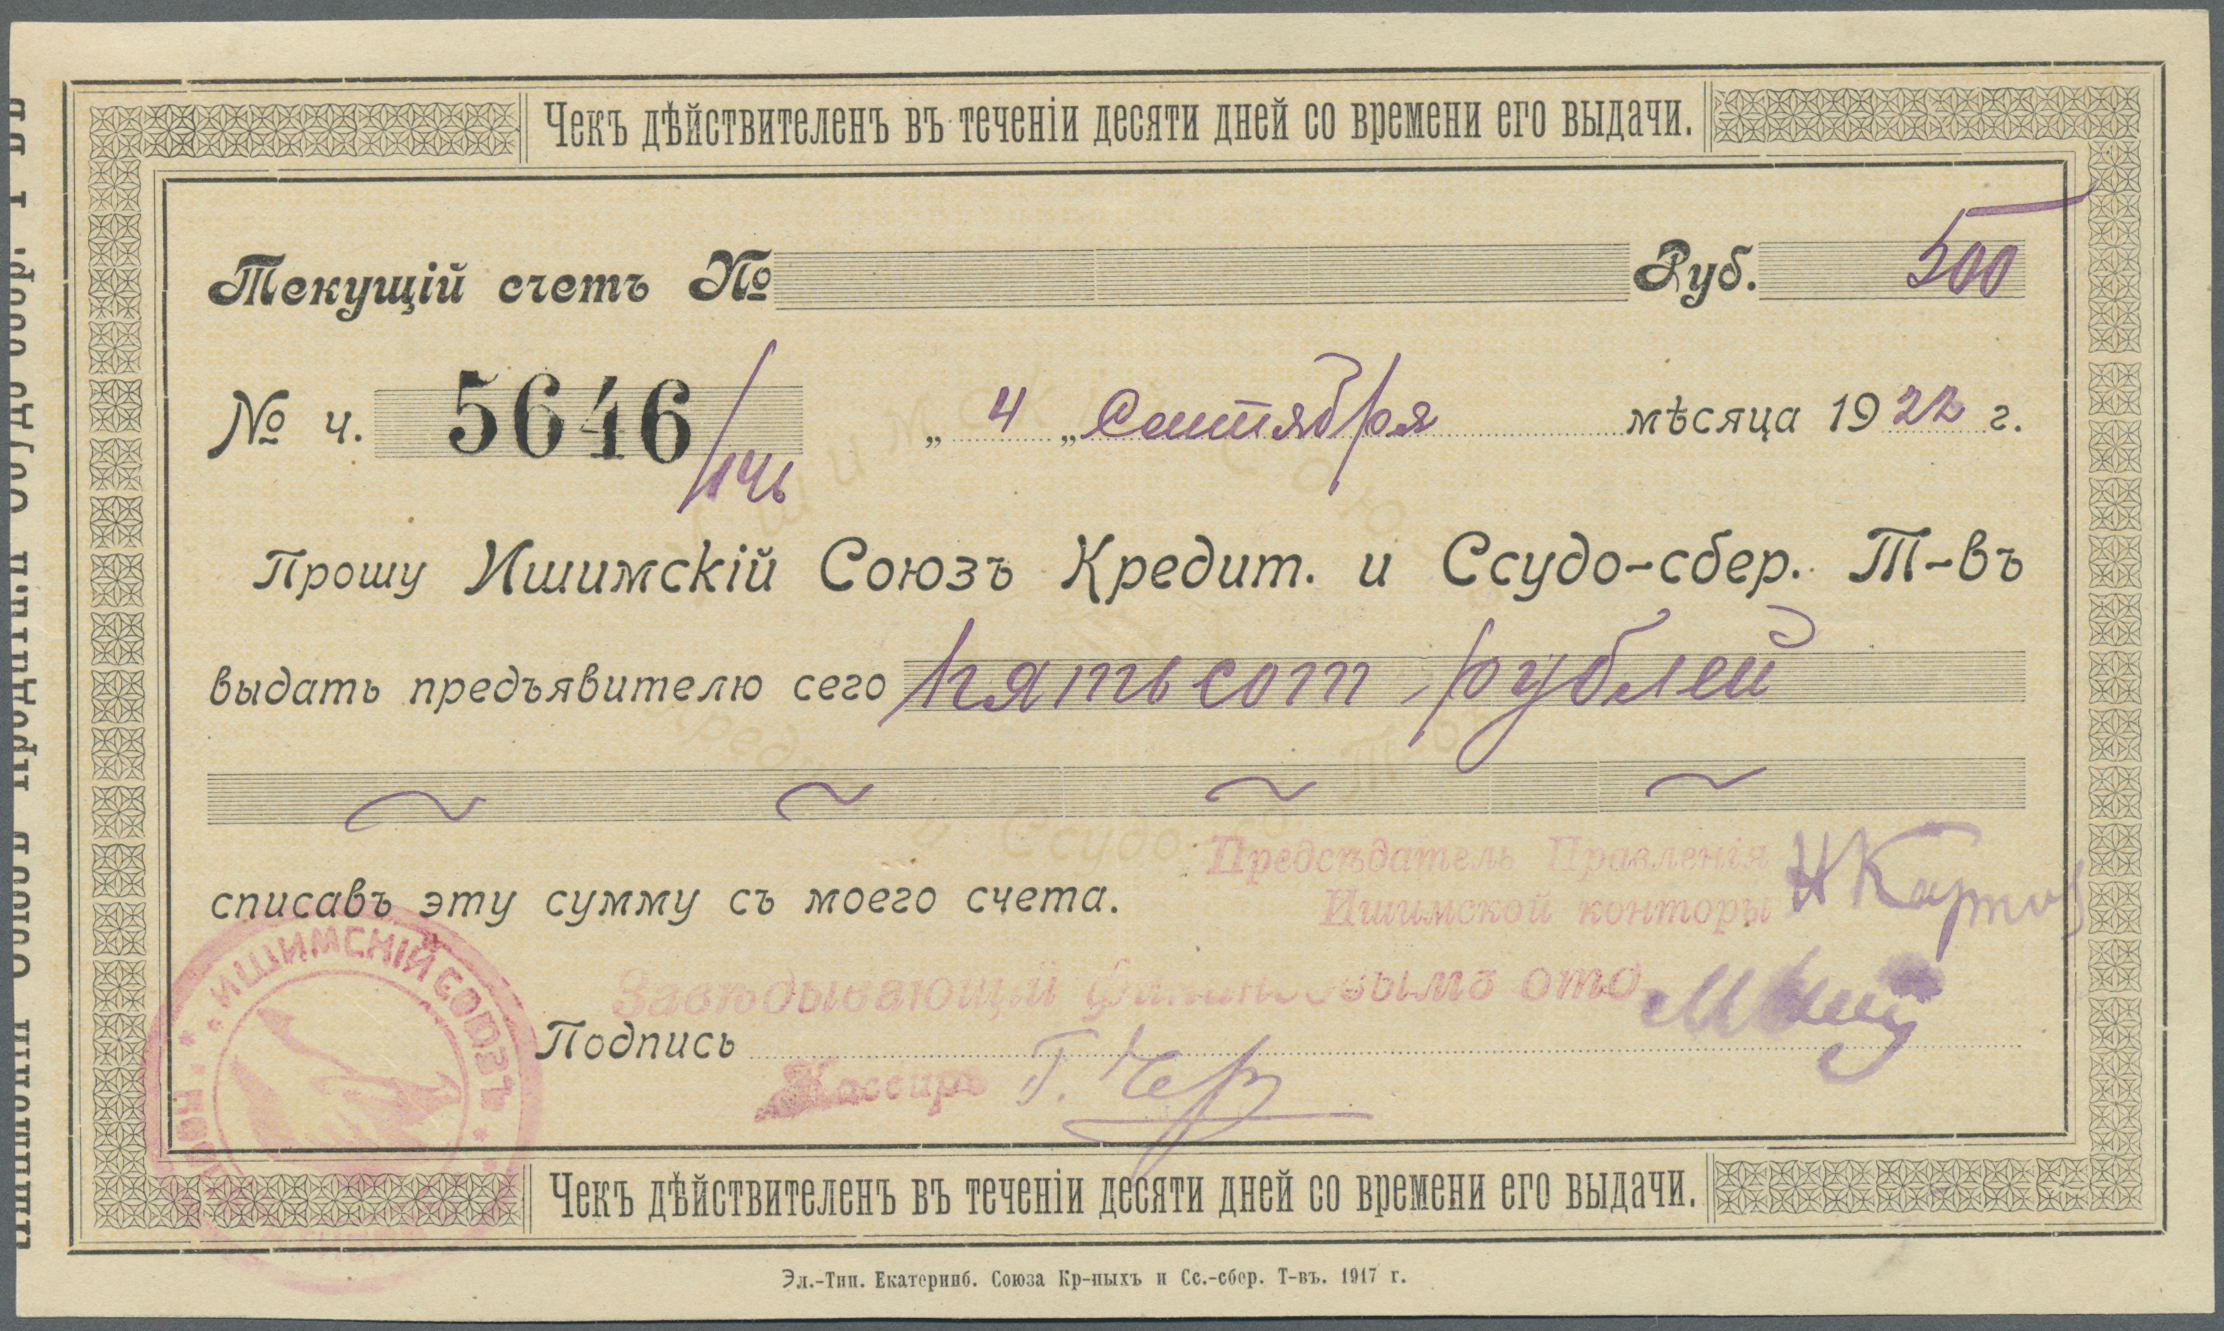 Lot 00789 - Russia / Russland | Banknoten  -  Auktionshaus Christoph Gärtner GmbH & Co. KG Sale #48 The Banknotes